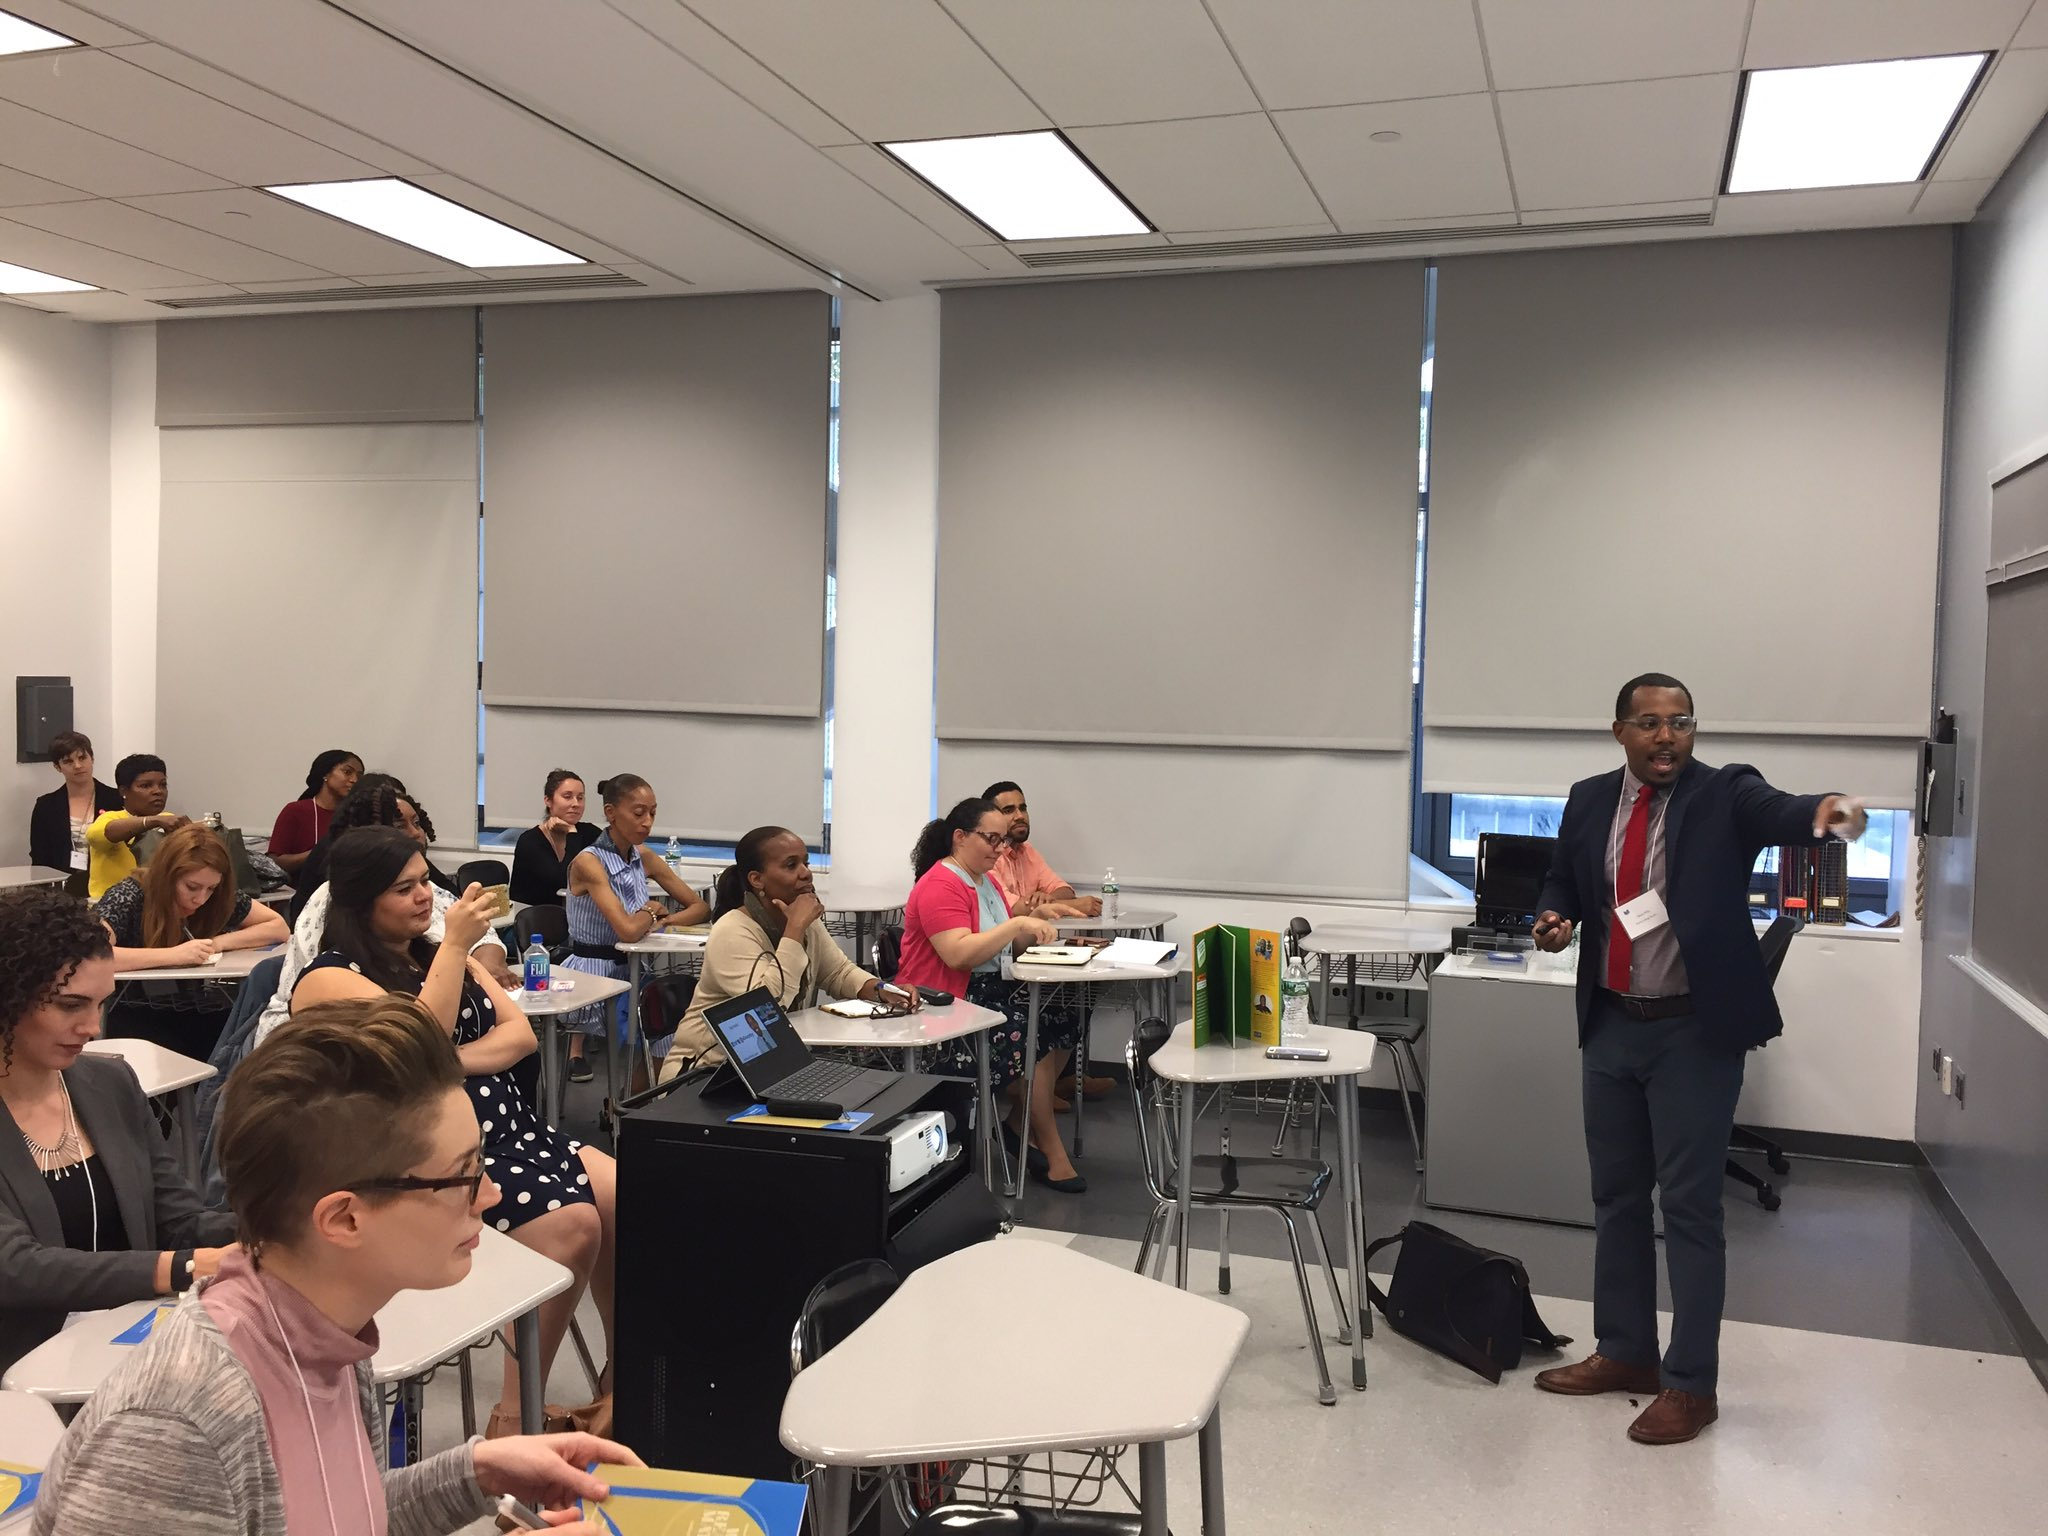 .@AlvinIrby was a teacher before starting @BarbershopBooks, so leading a breakout session in a classroom is second nature. #readingmatters https://t.co/G9n4WoeXET